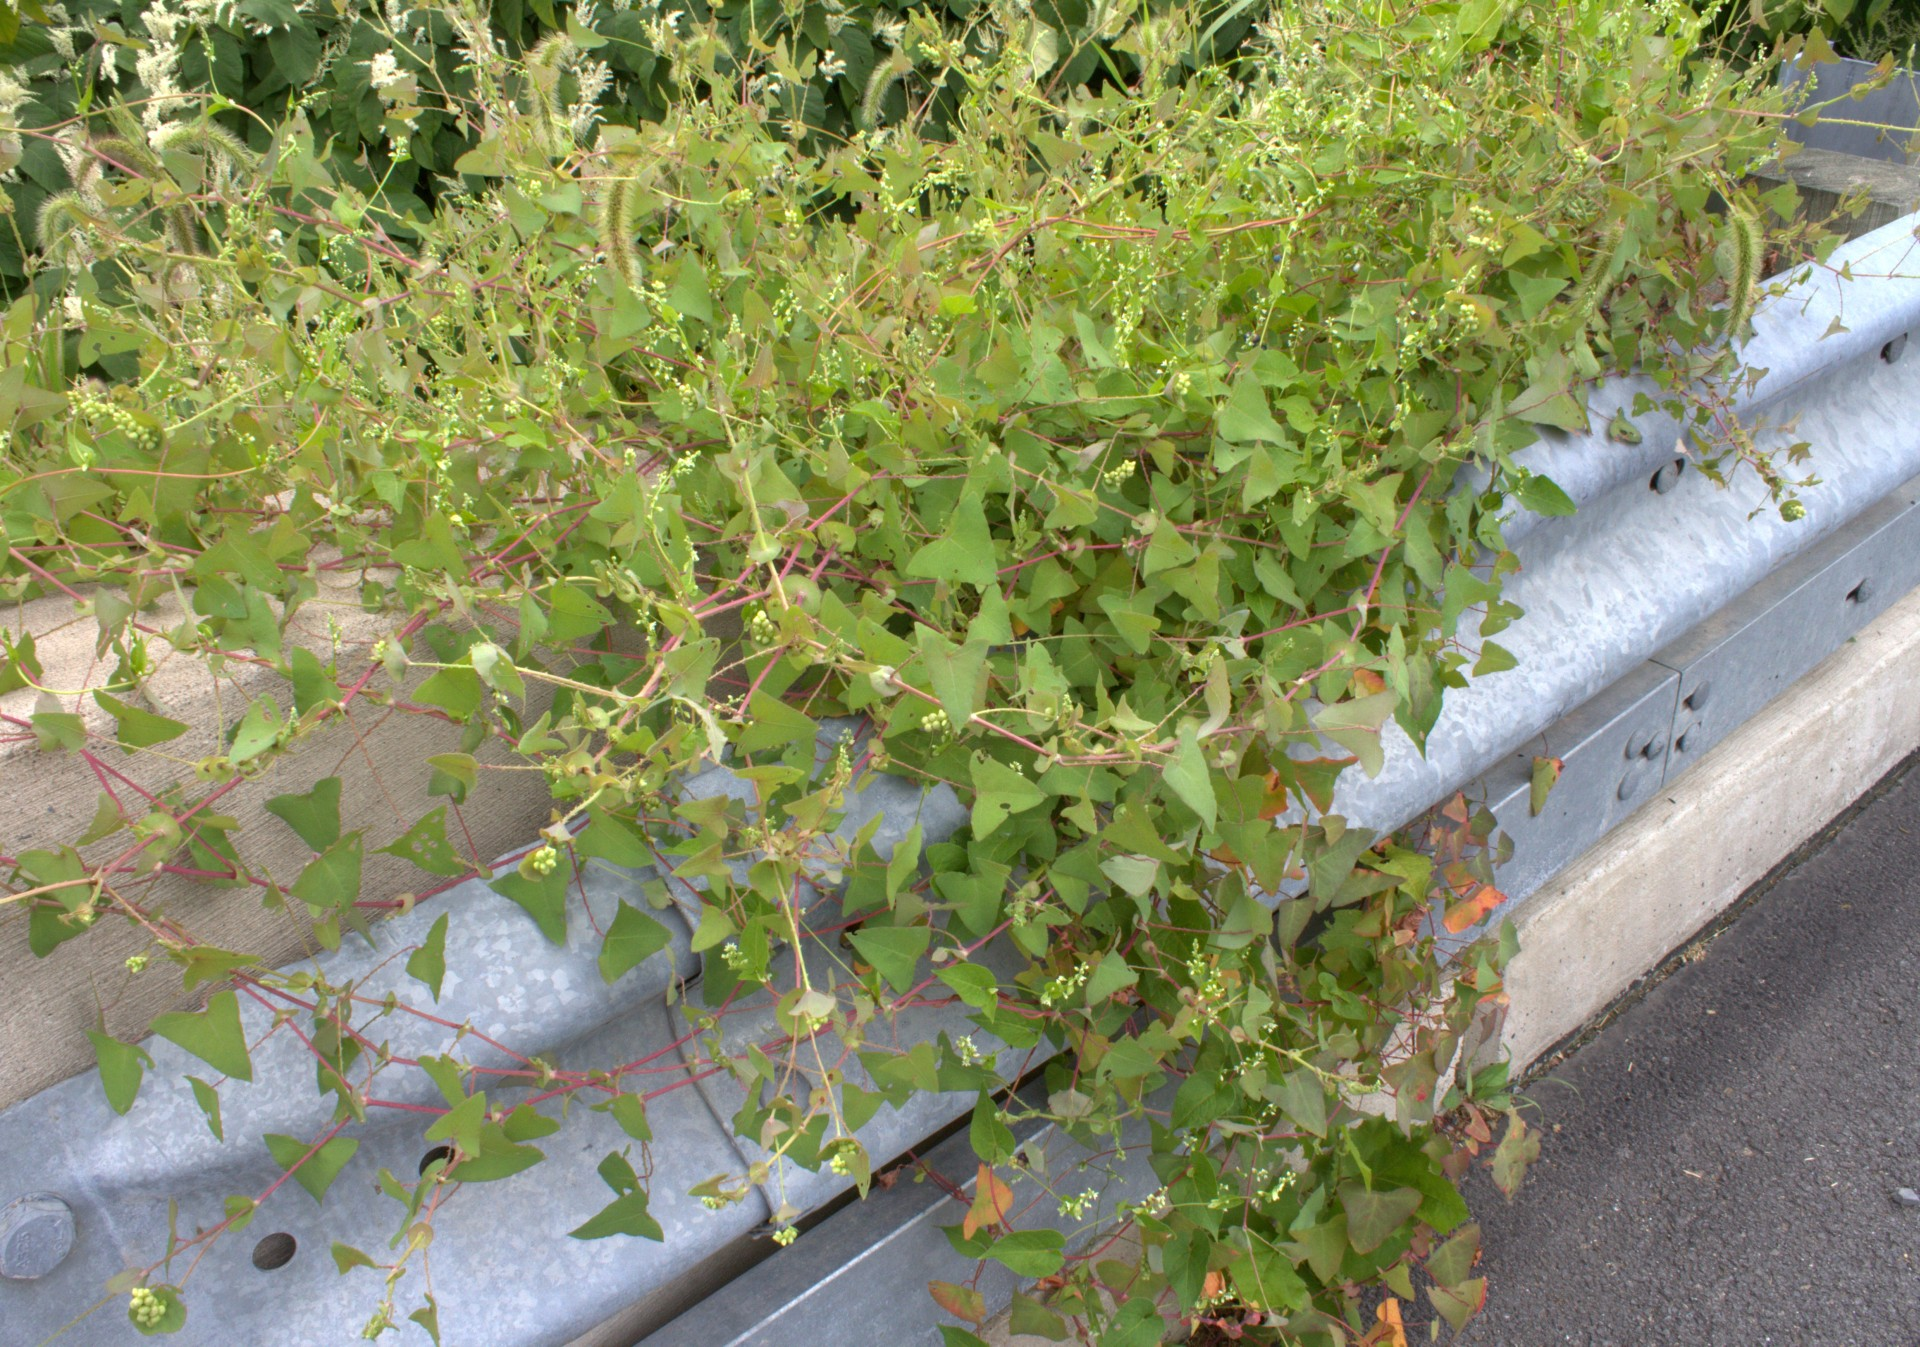 Triangle Vine Weed With Cool Blue Berries Wildeherb